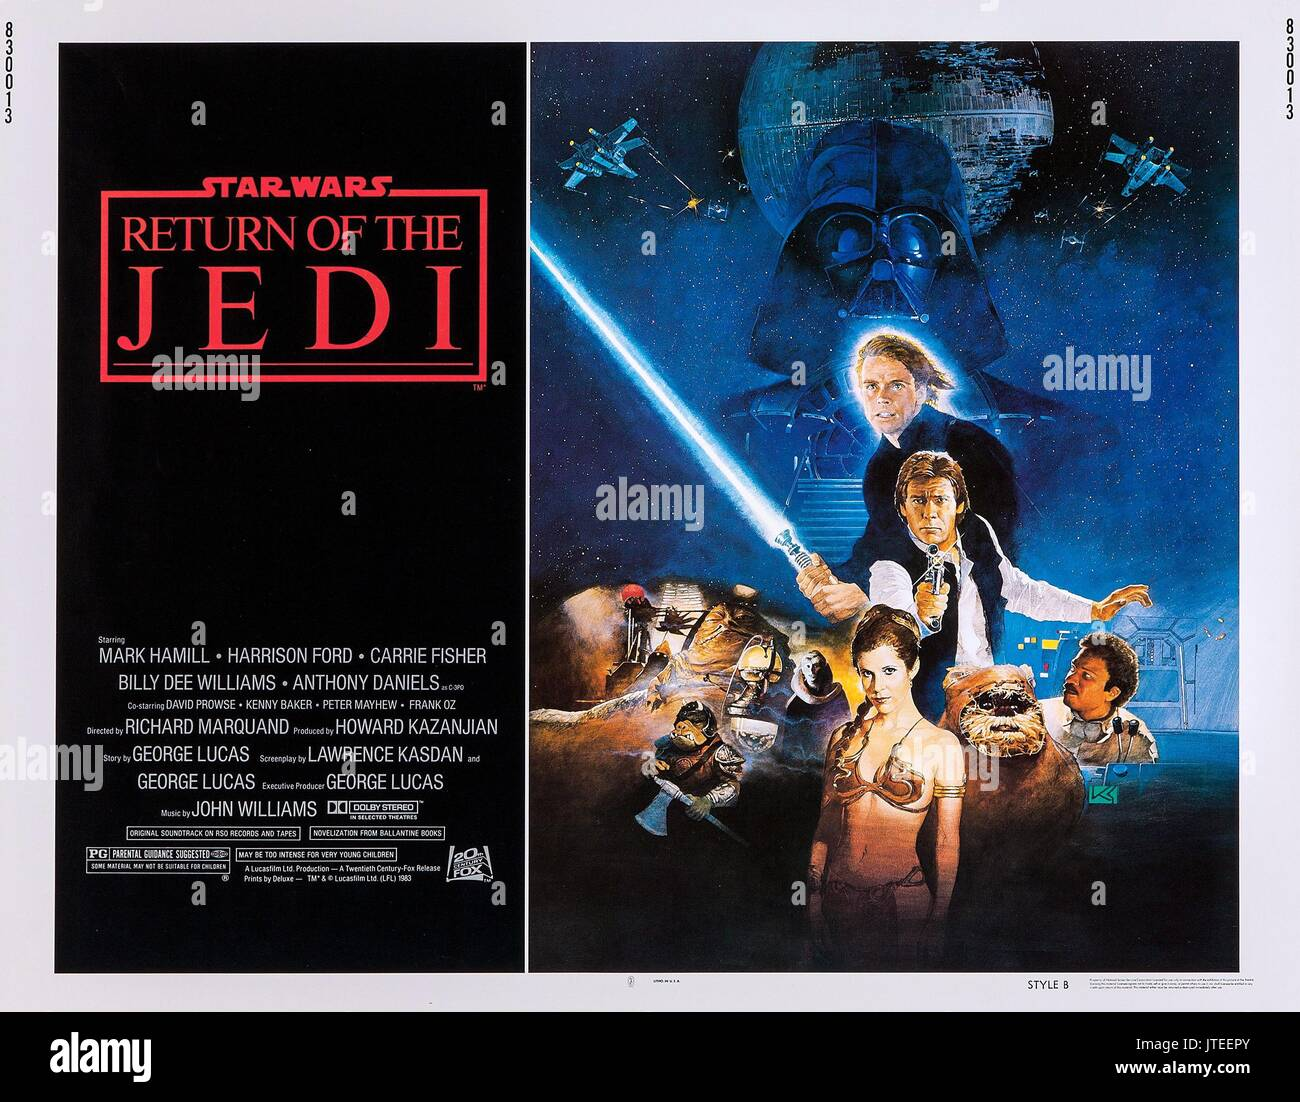 Mark Hamill Harrison Ford Carrie Fisher Billy Dee Williams Poster Stock Photo Alamy